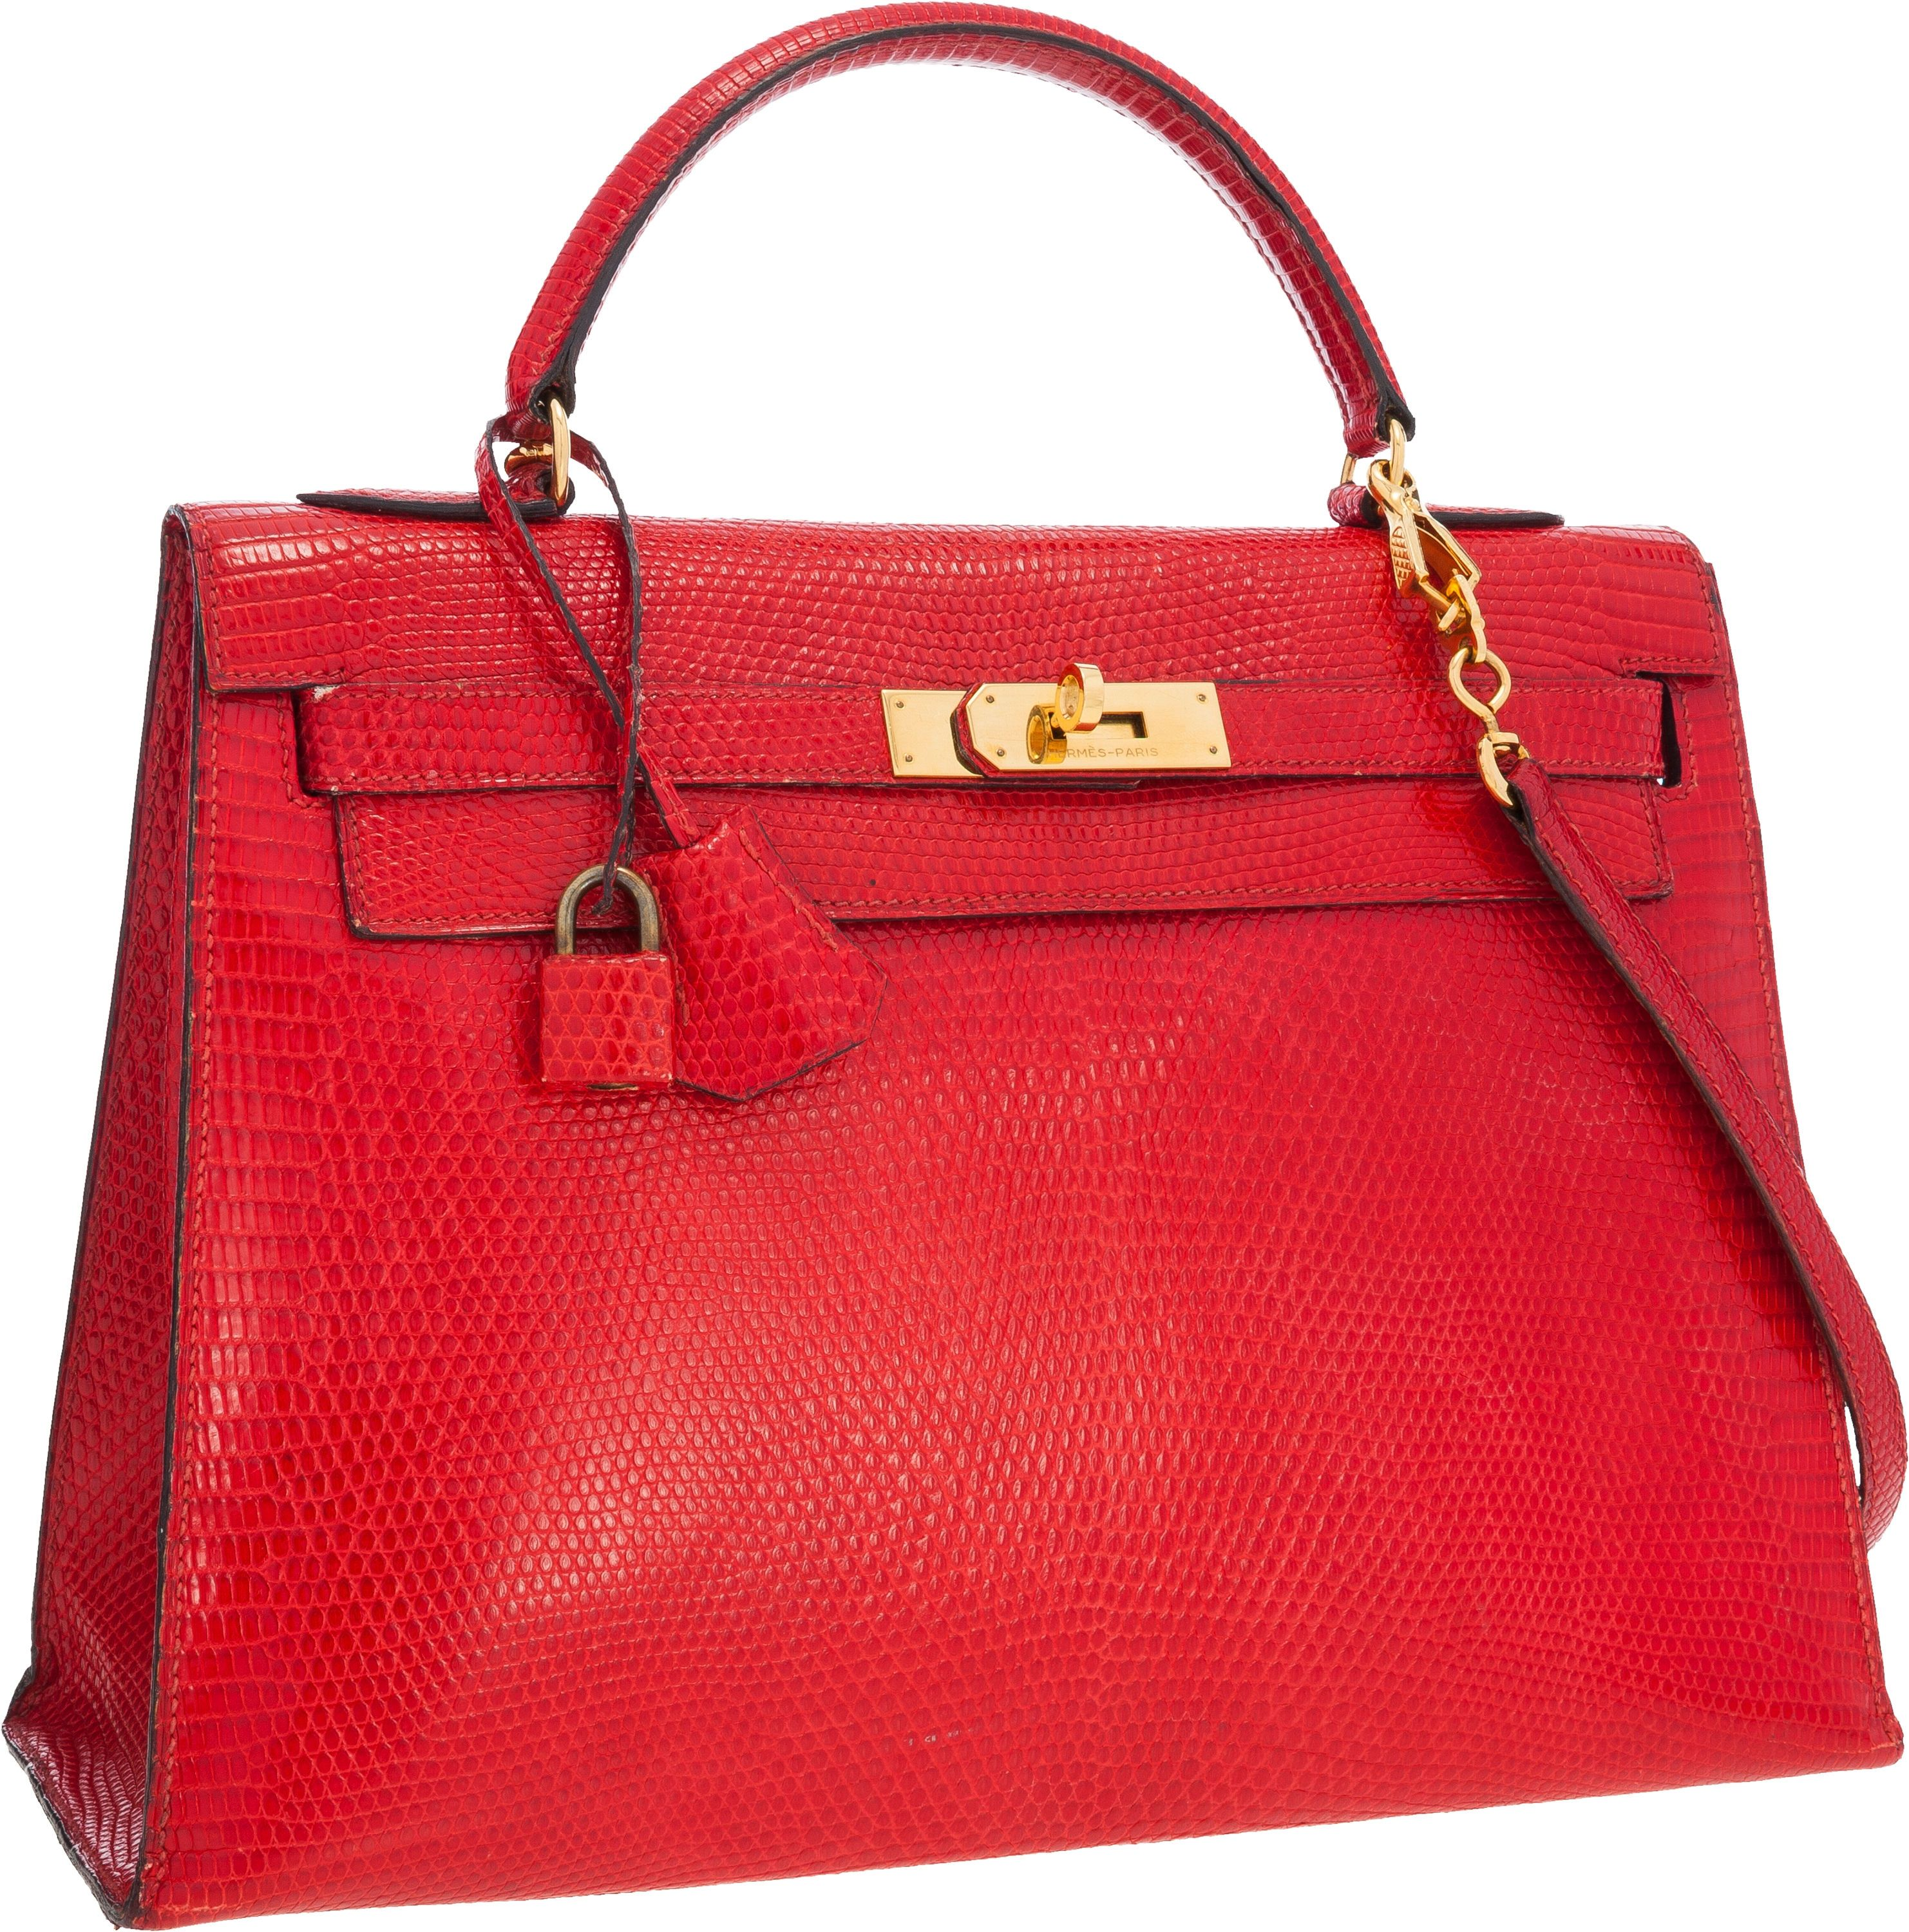 ... canada hermes 32cm shiny braise lizard sellier kelly bag with gold  hardware 331f7 80c93 05e0c19a1ceee